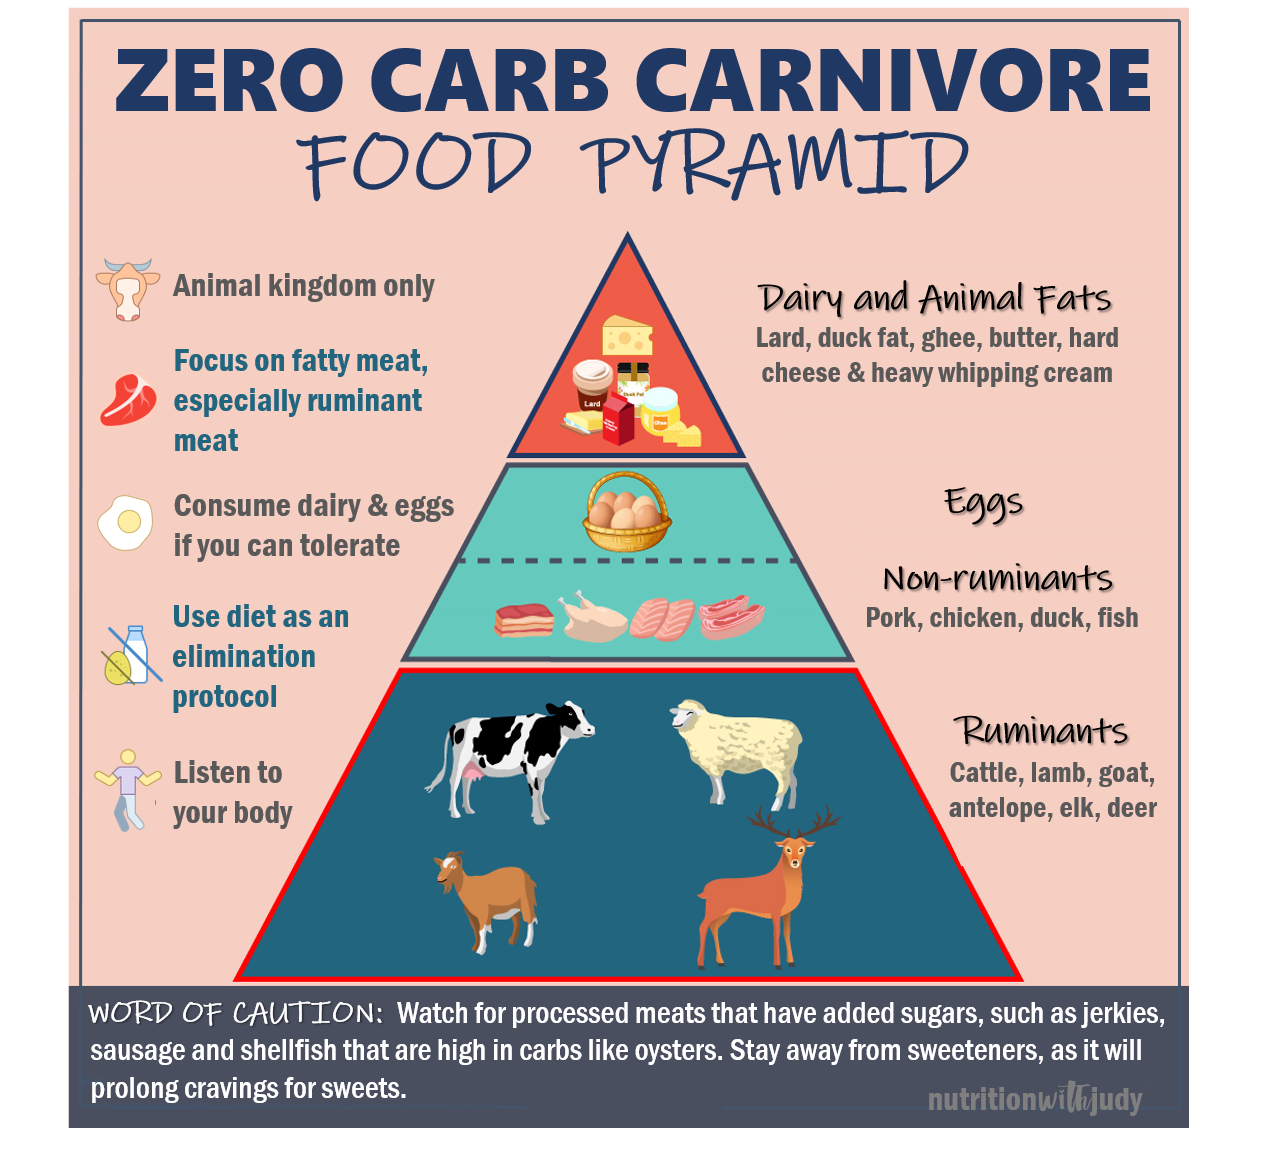 Carnivore Diet for Beginners — How to Start the Zero